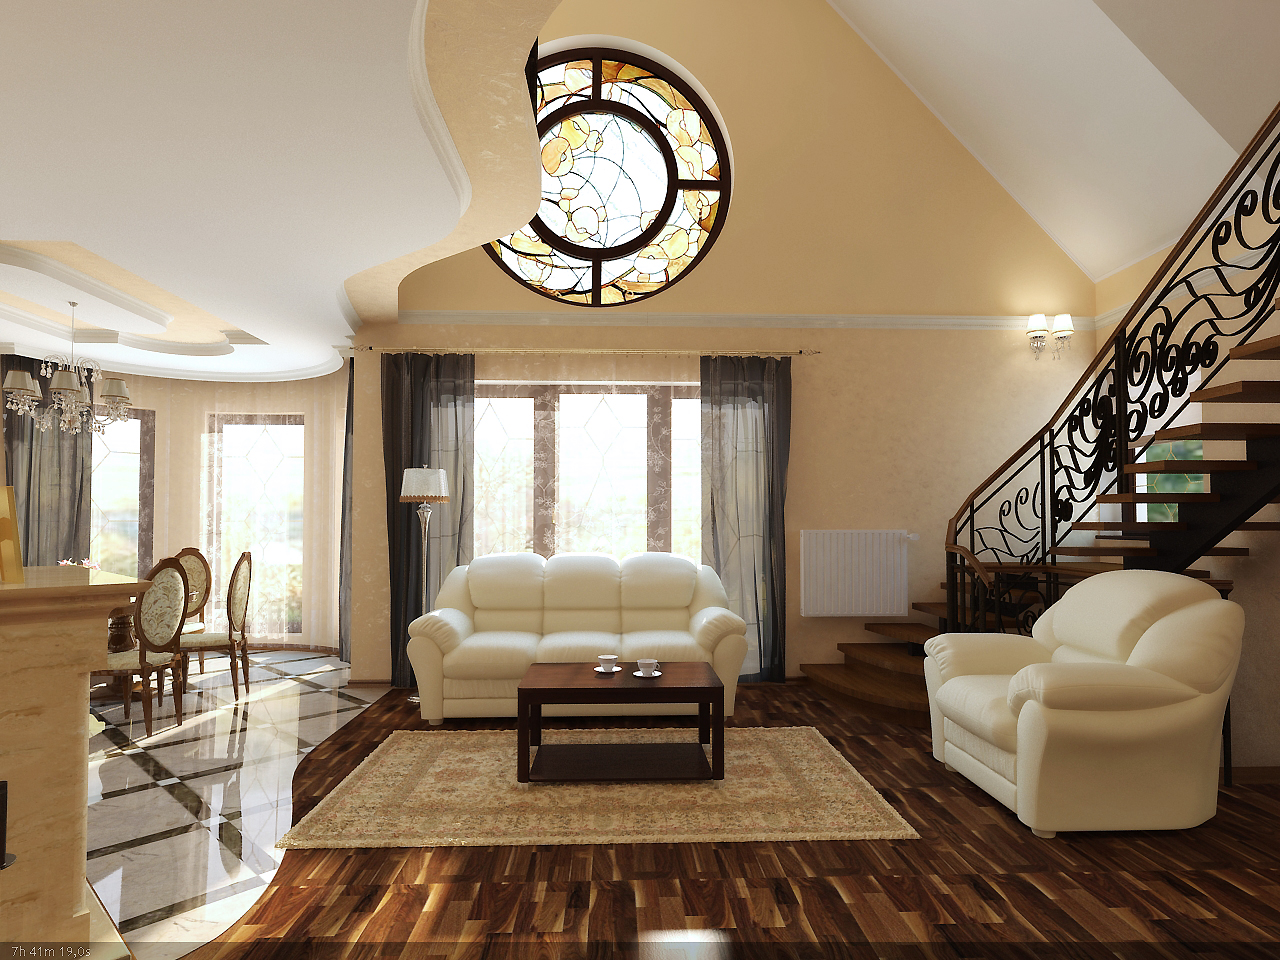 Interior Design Houses Classic Interior Design